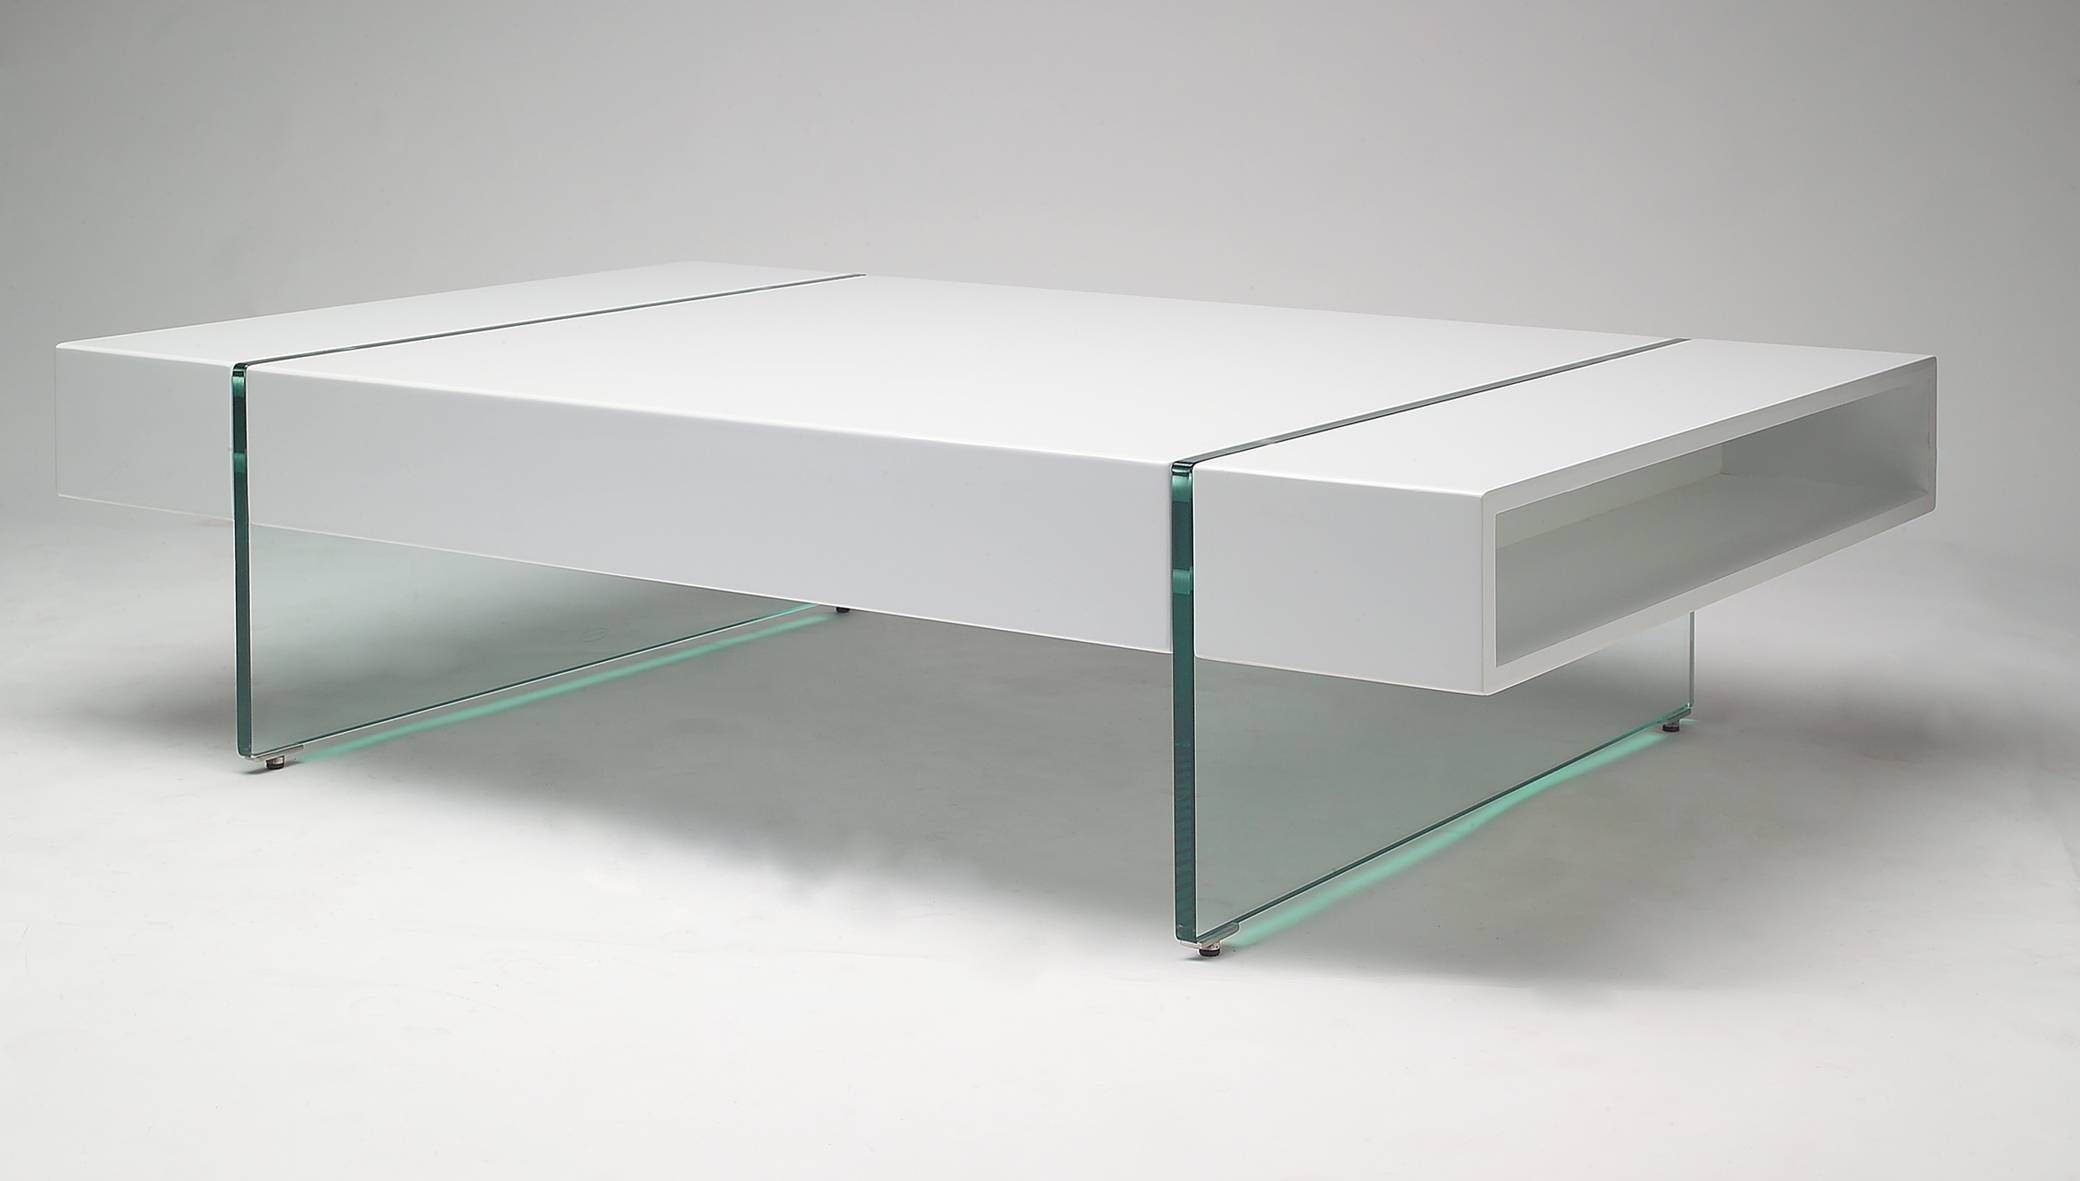 White Coffee Tables With Storage Within White Coffee Tables With Storage (View 17 of 30)